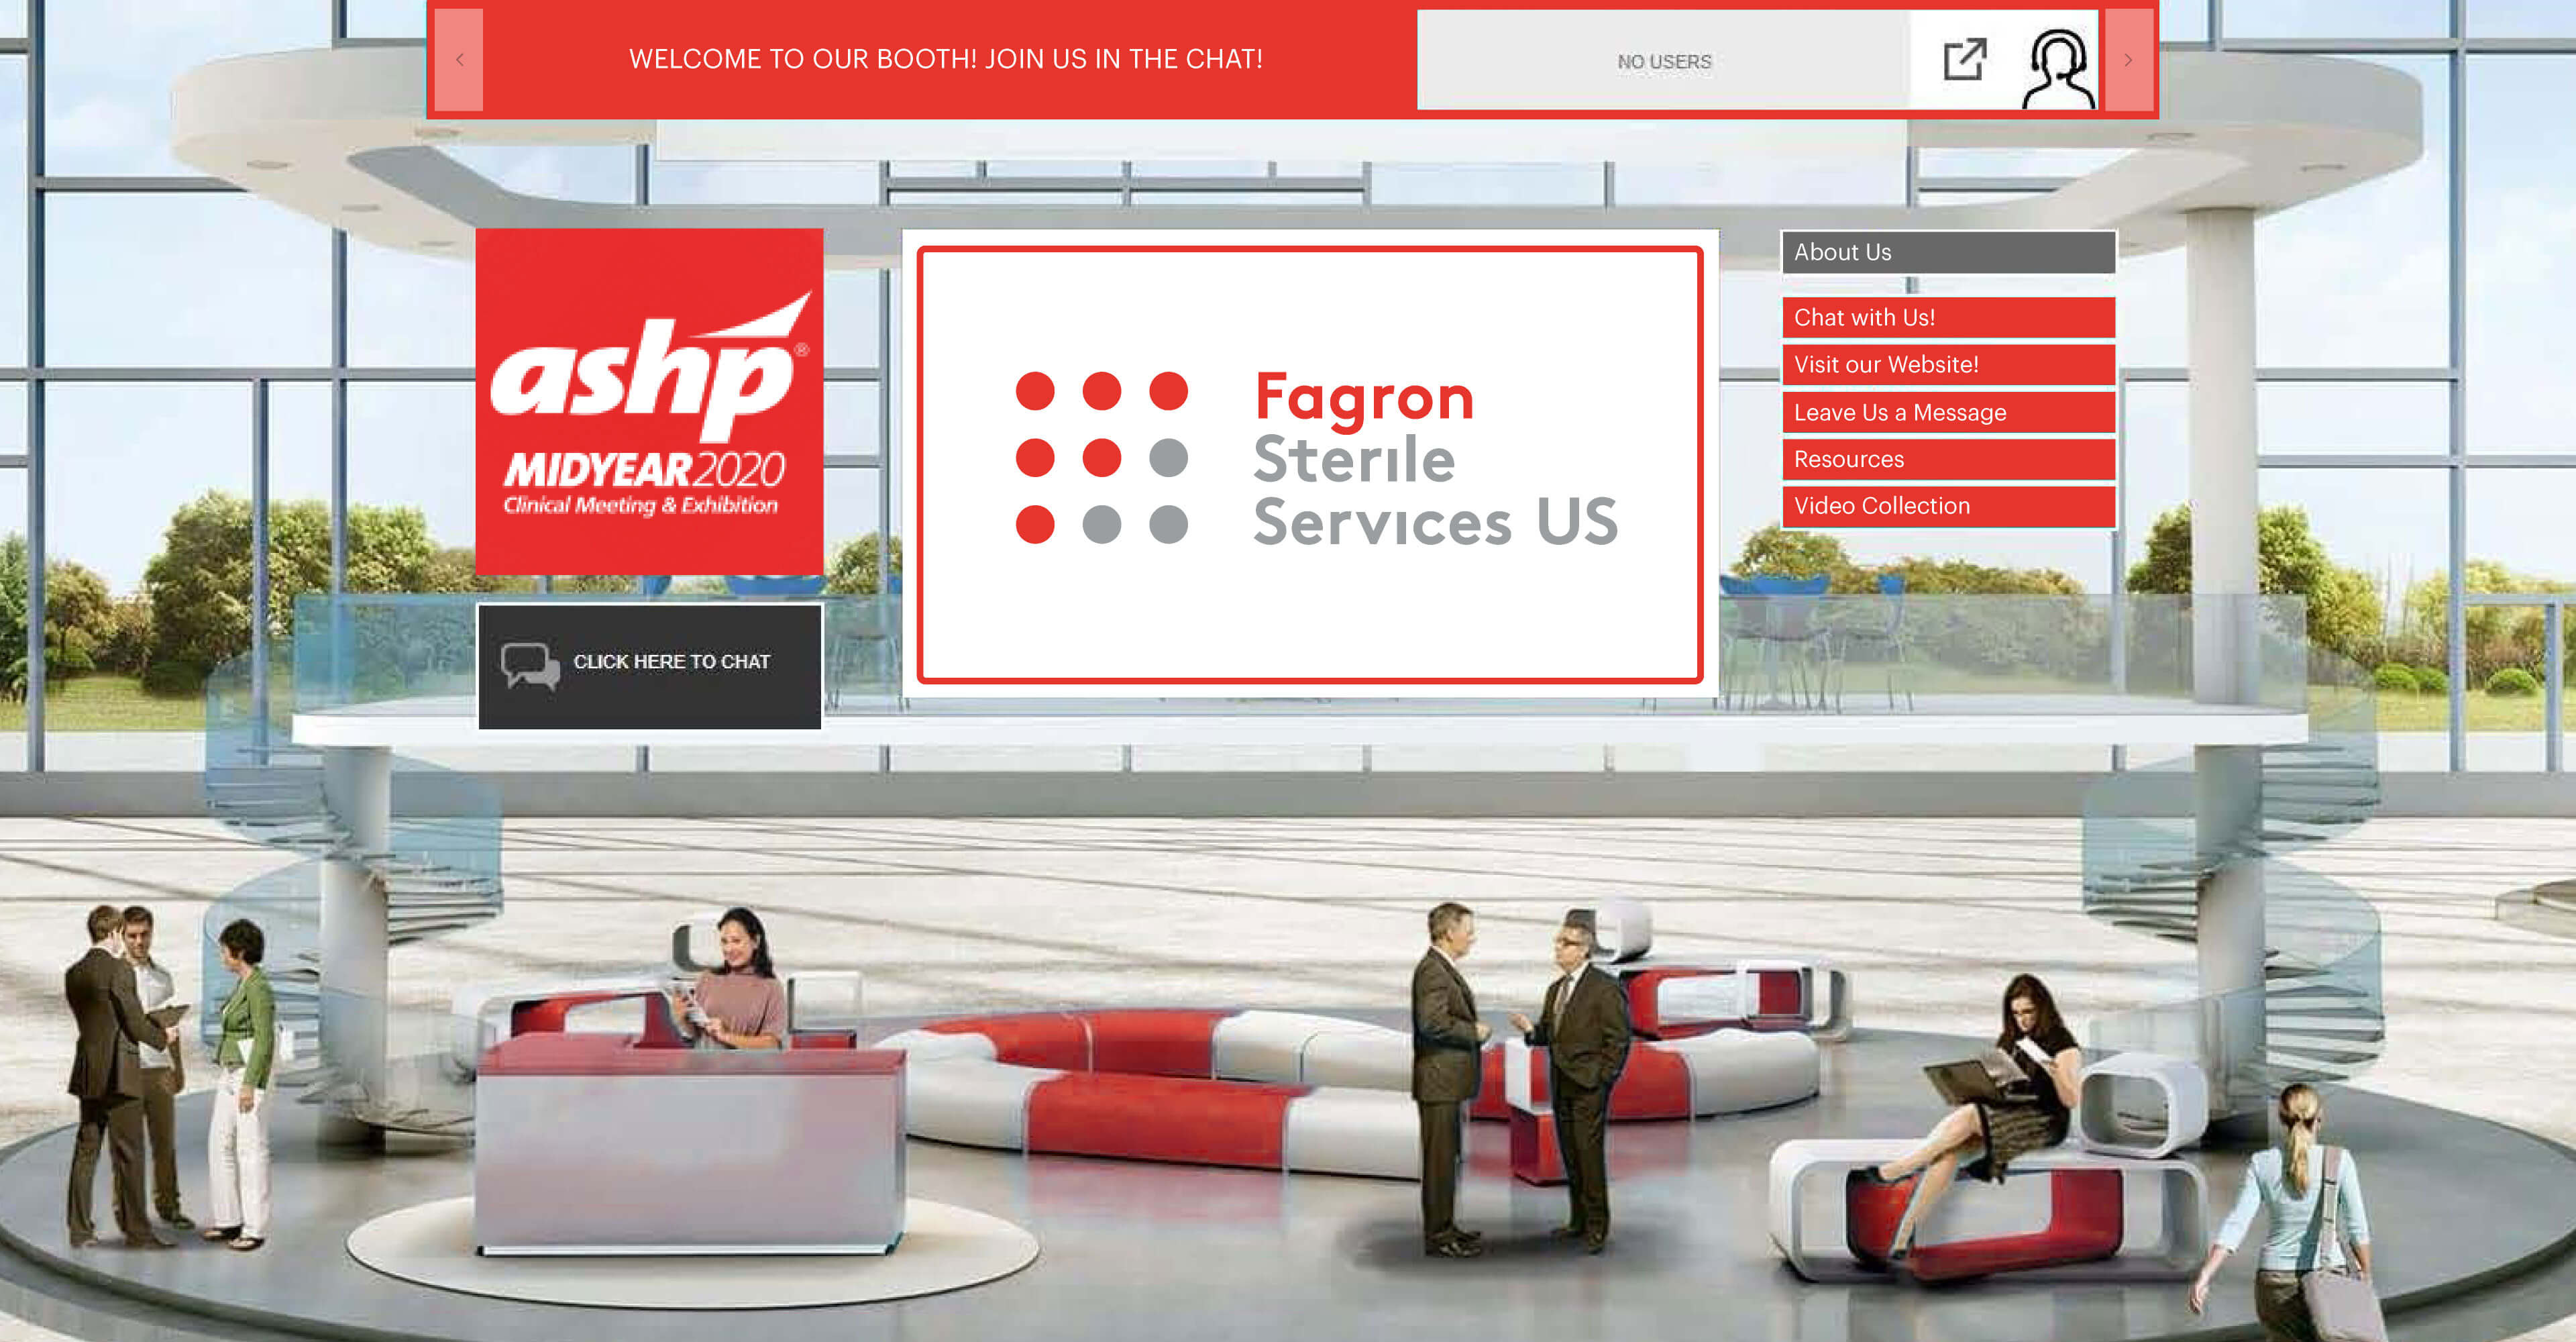 Fagron Sterile Services attends ASHP Midyear 2020 Virtual Conference, 503B Outsourcing